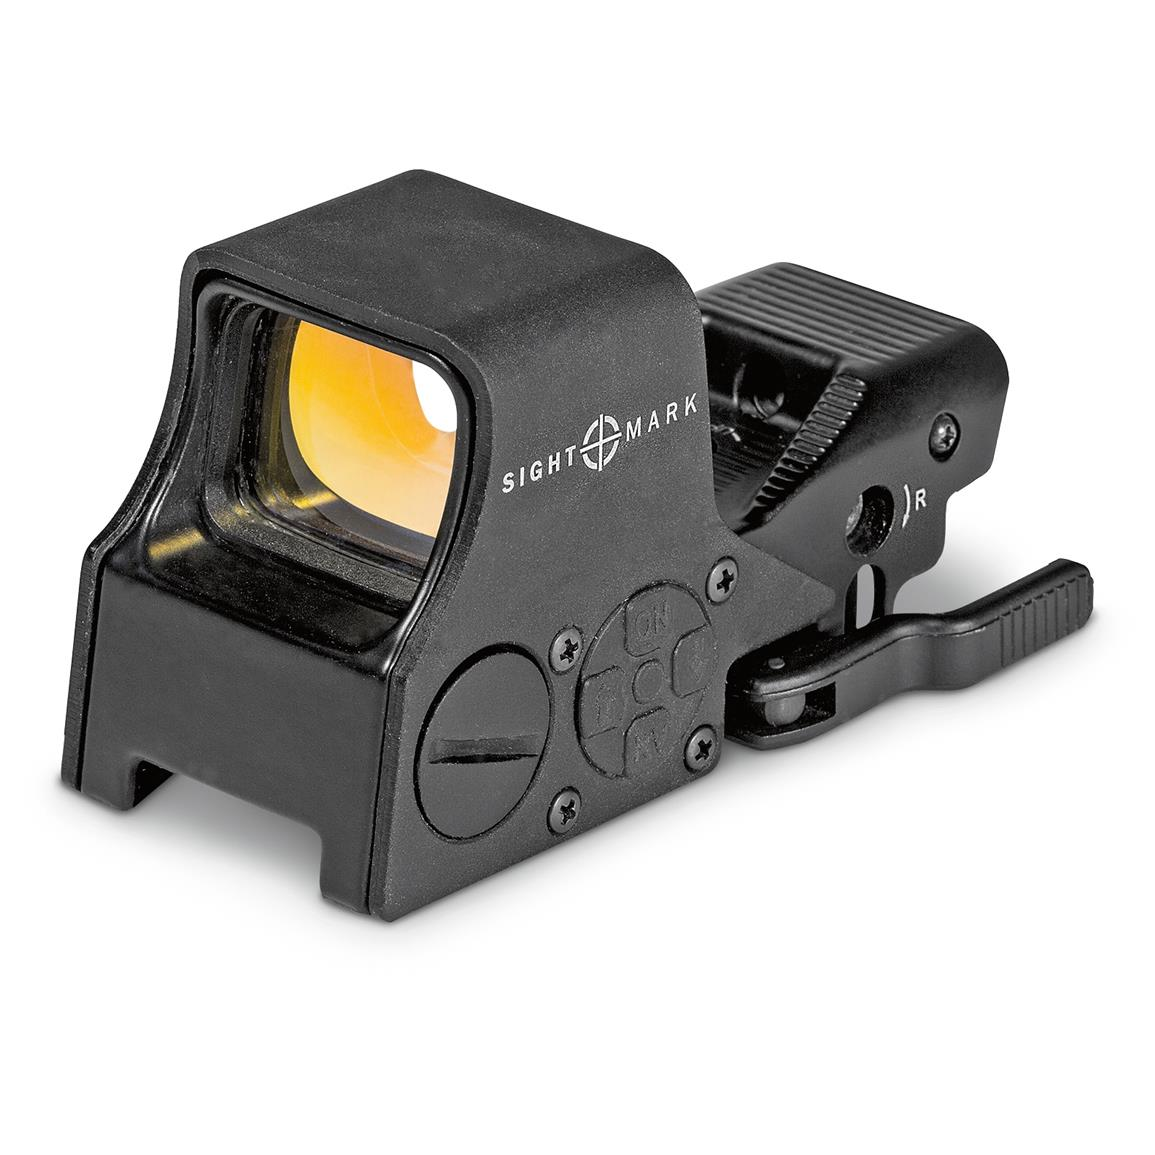 Sightmark M-Spec Reflex Sight